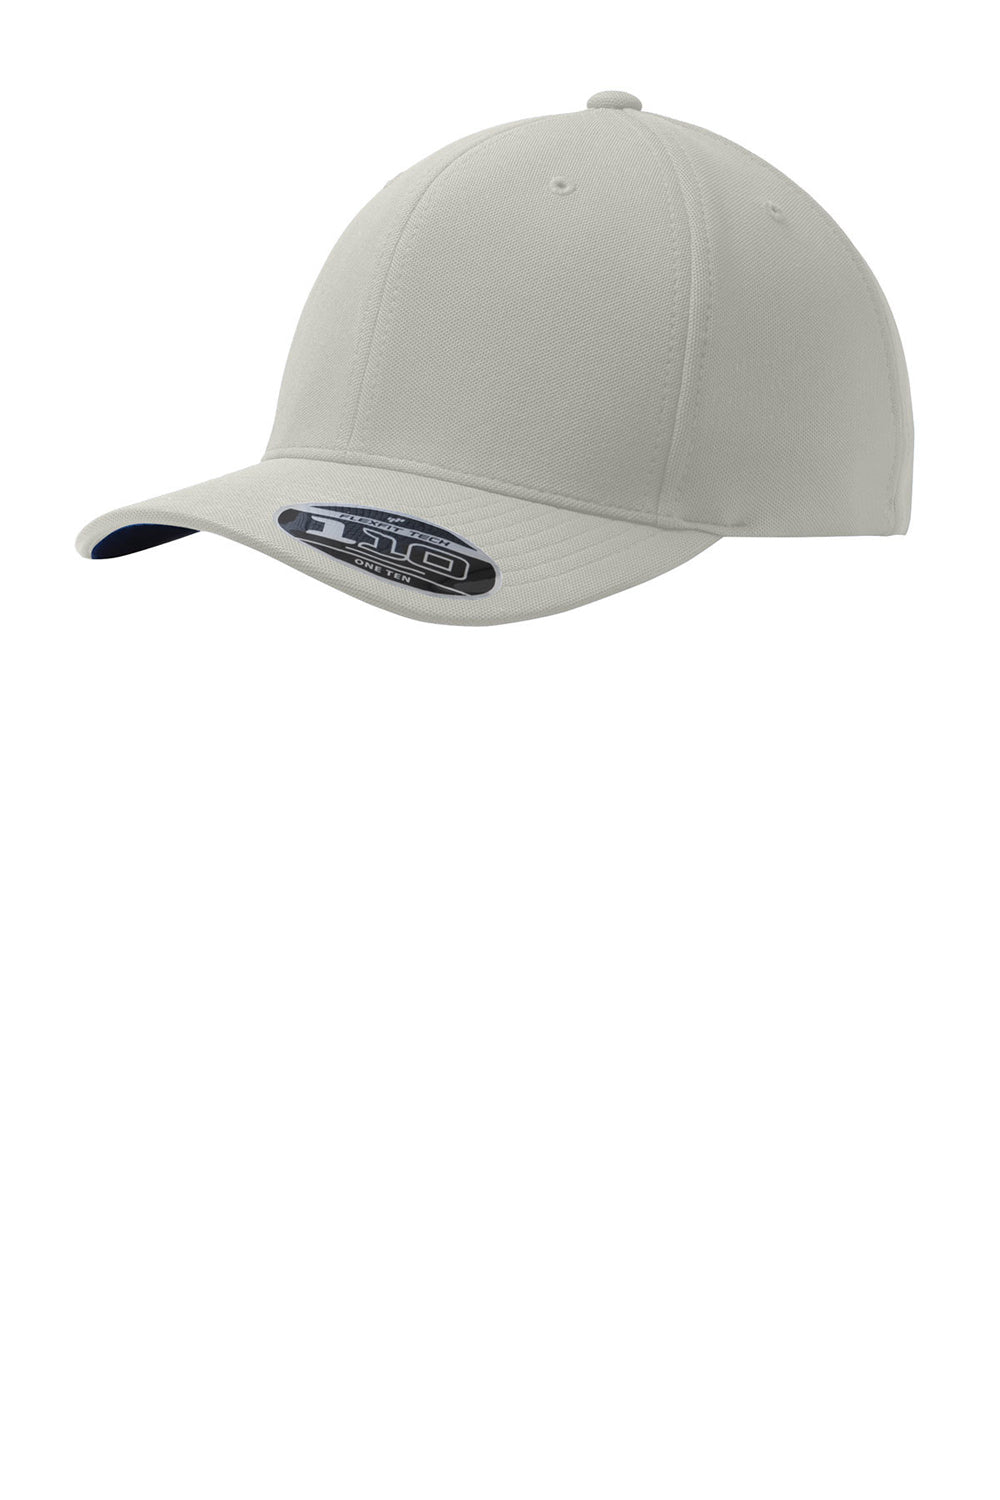 Port Authority C934 Mens Stretch Fit Hat Silver Grey Front